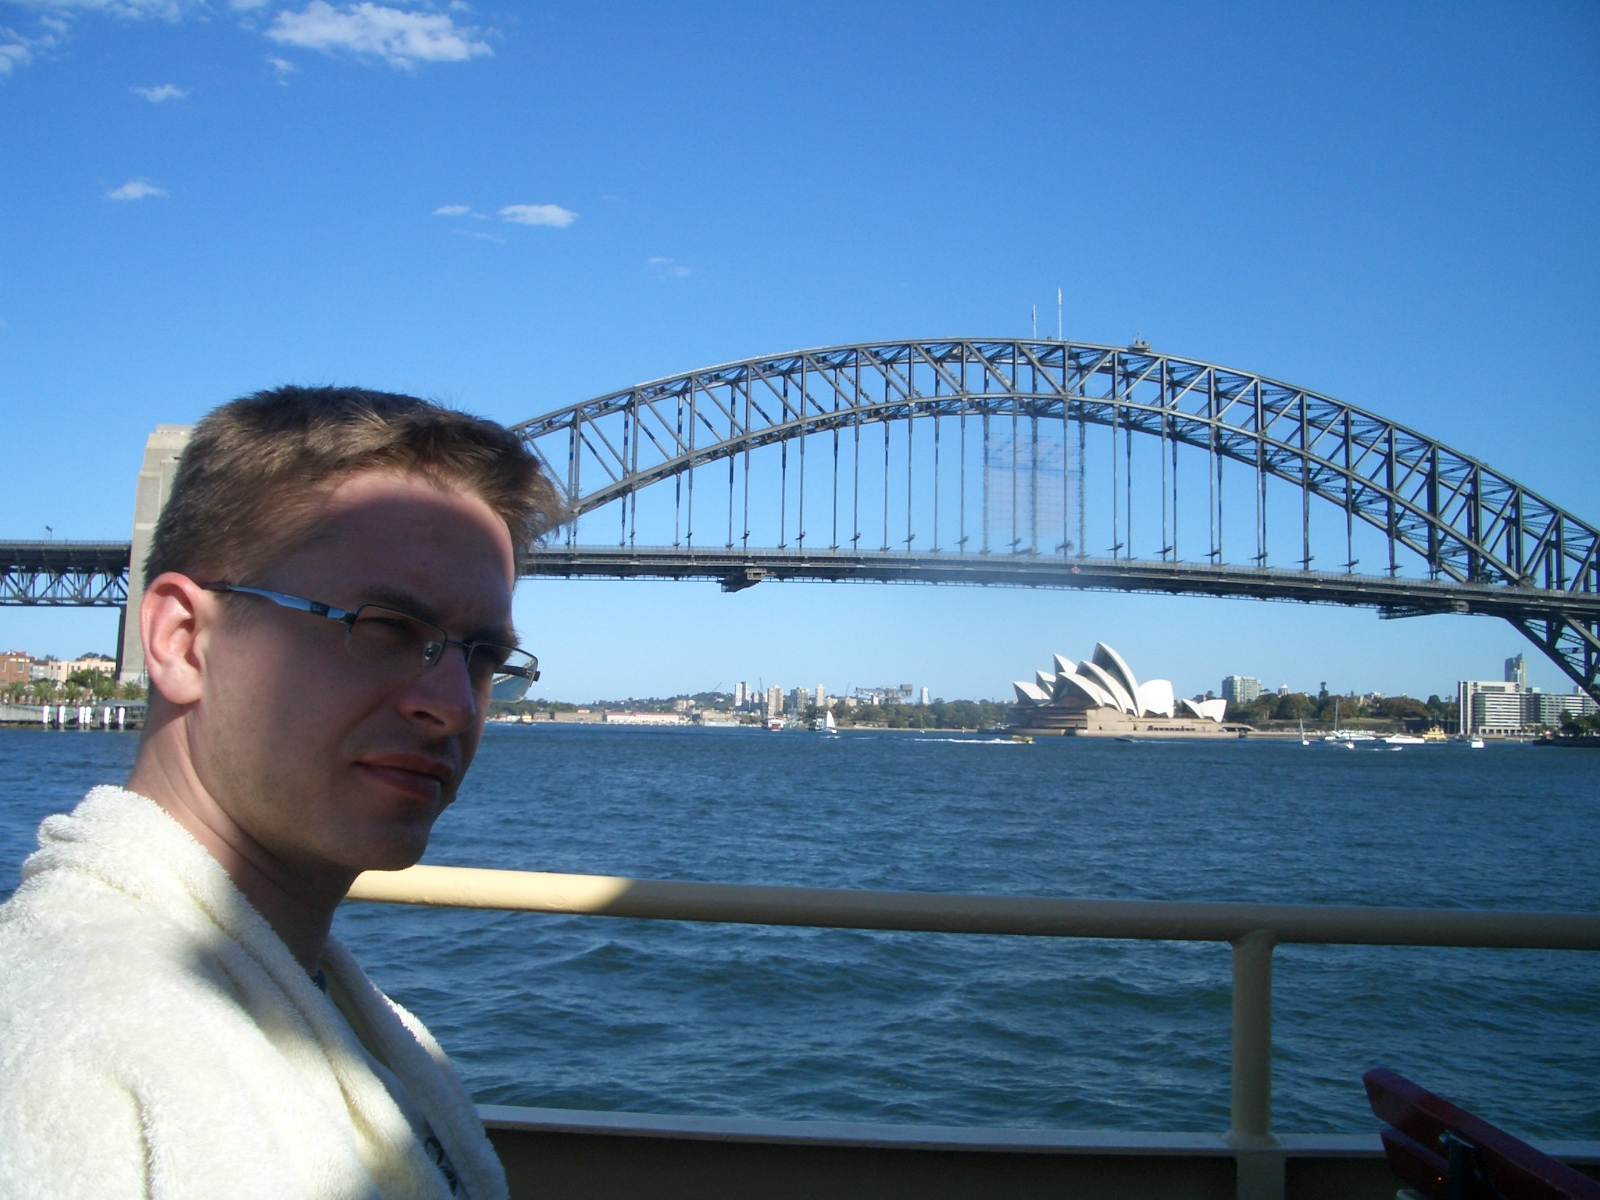 Sydney - Harbour Bridge and Opera House (ferry view)